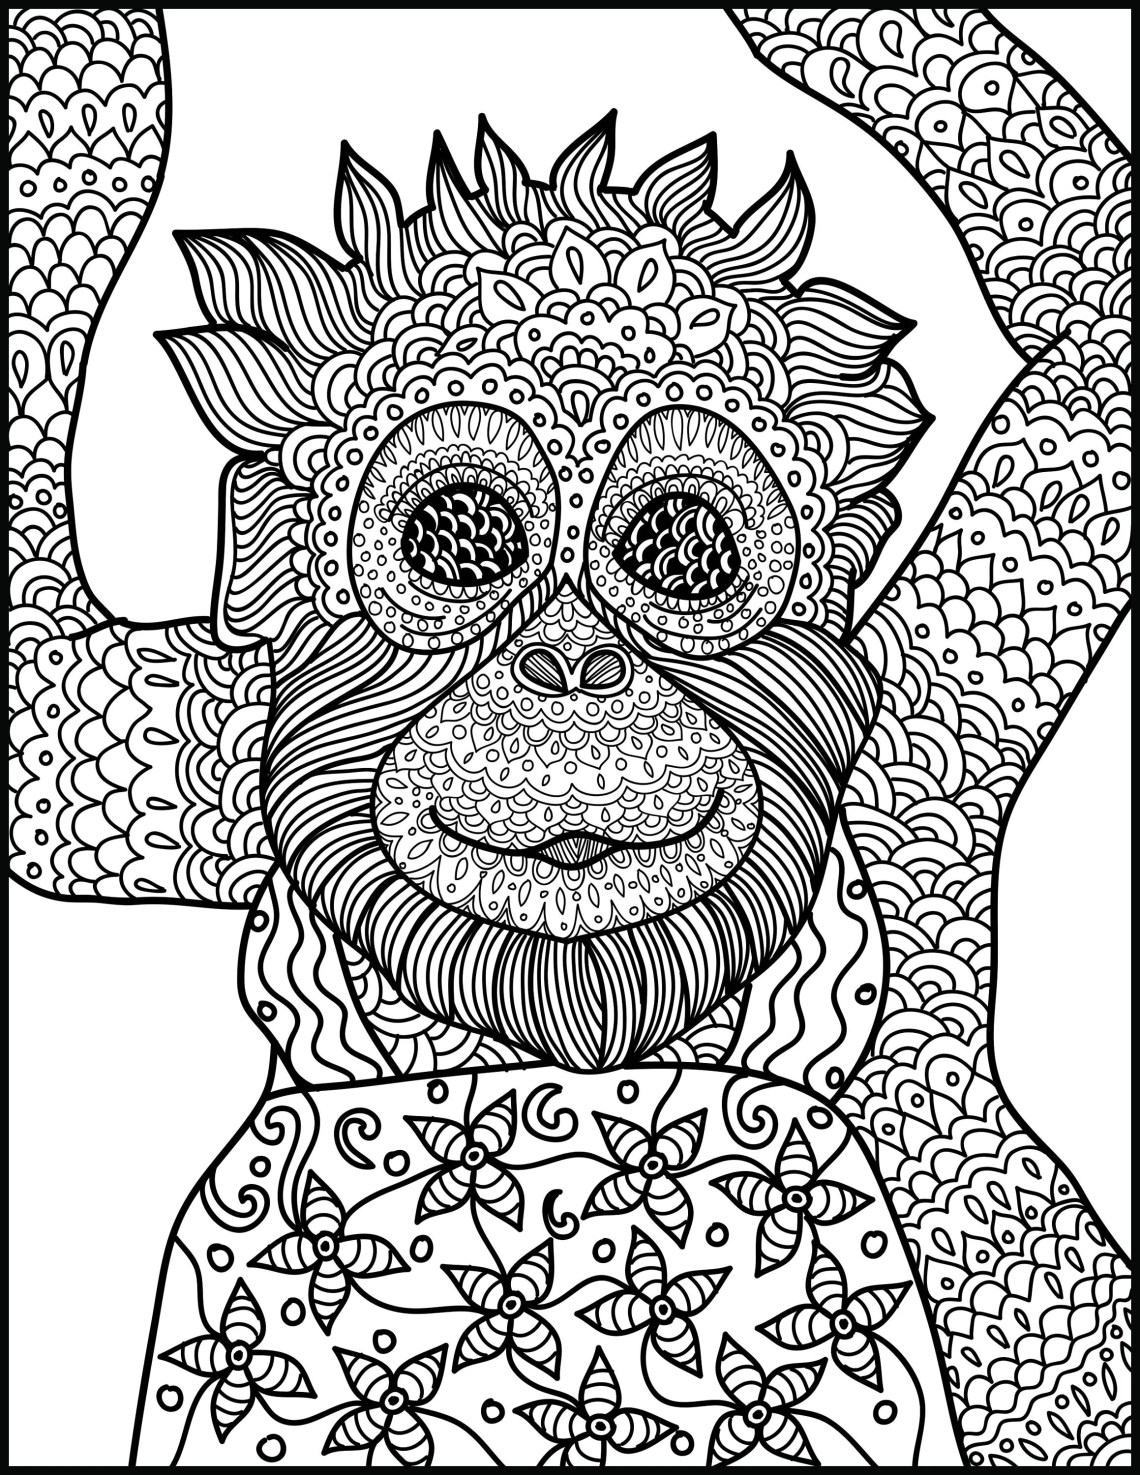 Animal Coloring Page: Monkey Printable Adult Coloring Page | printable colouring pages for adults animals